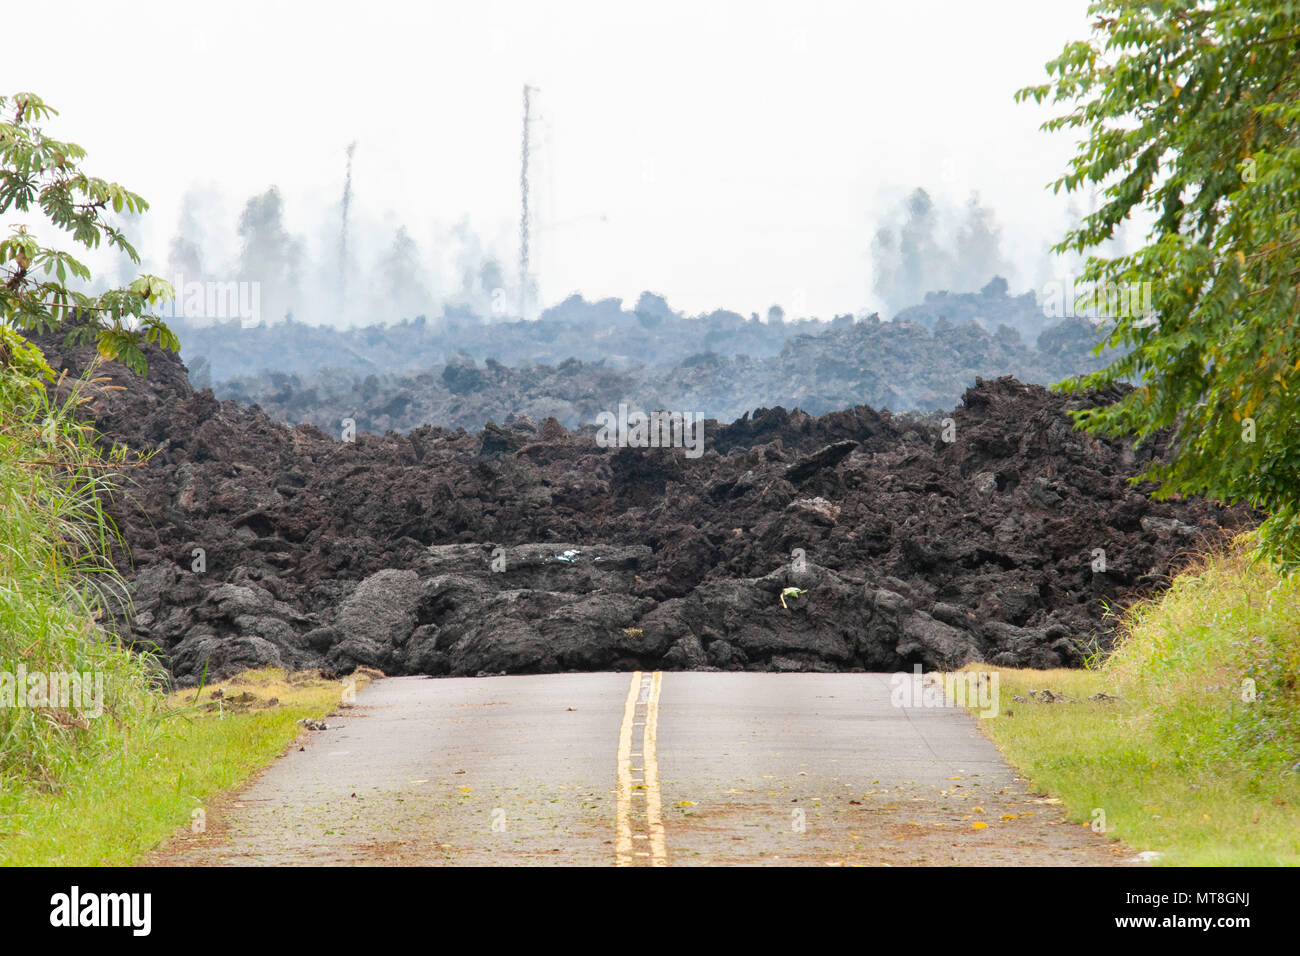 A lava roadblock covers a residential road May 12, 2018, at Leilani Estates, Pahoa, Hawaii. Members of the Hawaii Army and Air National Guard have been activated in order to assemble Task Force Hawaii, which is providing traffic assistance, presence patrols and supporting local government agencies with the volcano outbreak relief effort. (U.S. Air National Guard photo by Senior Airman John Linzmeier) - Stock Image